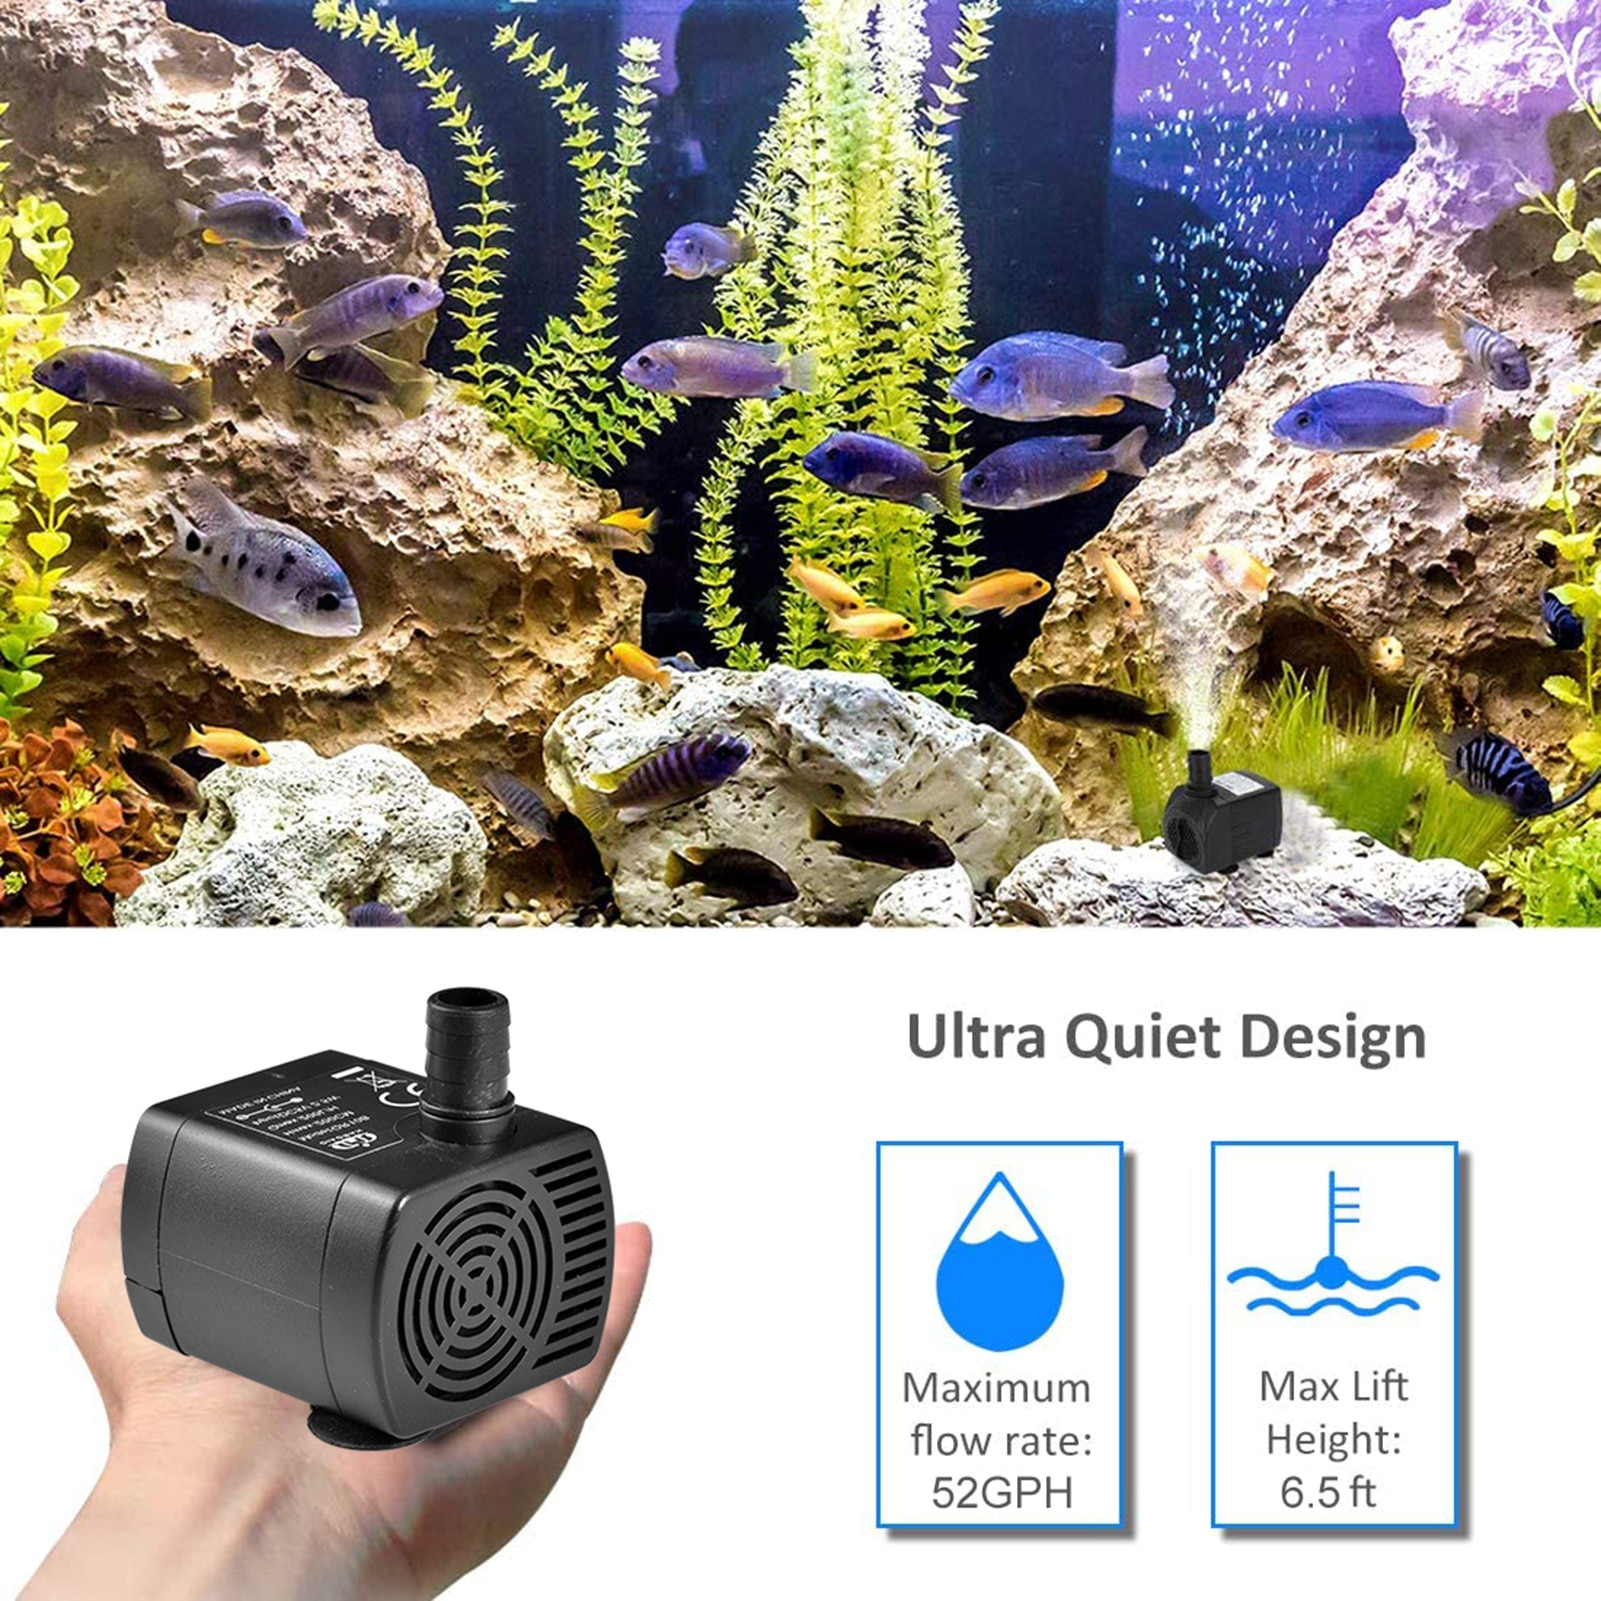 home intelligent water heater circulation system water pump air can automatically return water pump circulation pump Circulation Mini Water Pump Low Noise 2M DC 5V Pump For Fish Tank 52GPH Miniature DC Brushless Hot Water Circulation Pump Hot